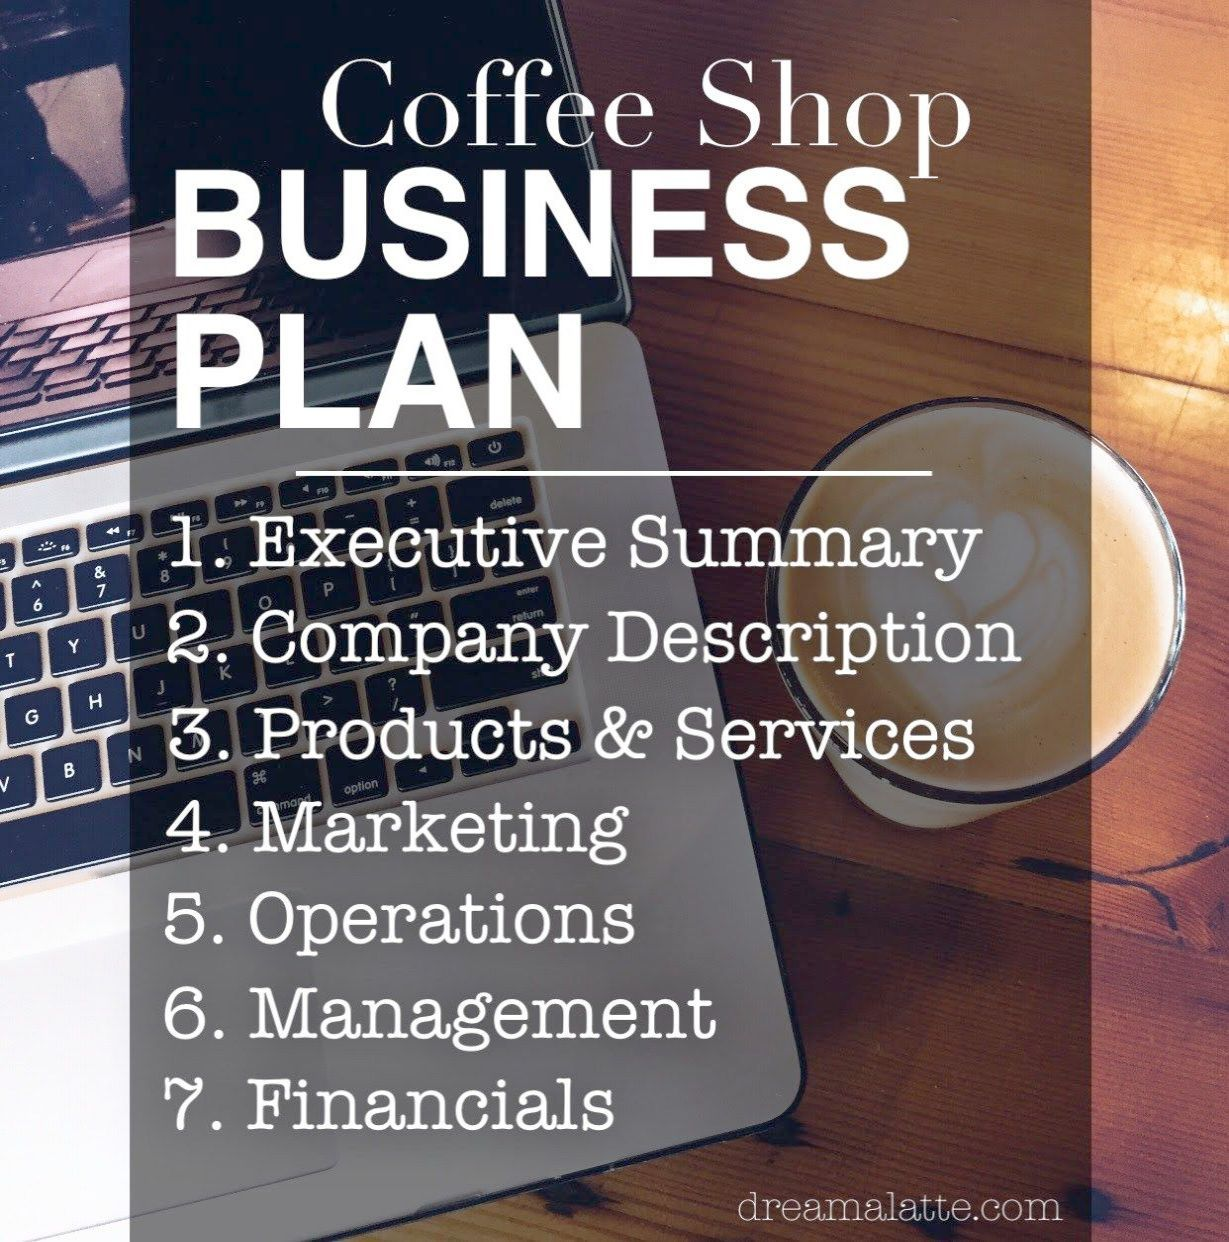 Marketing Ideas During Event Business Planning Job Titles Coffee